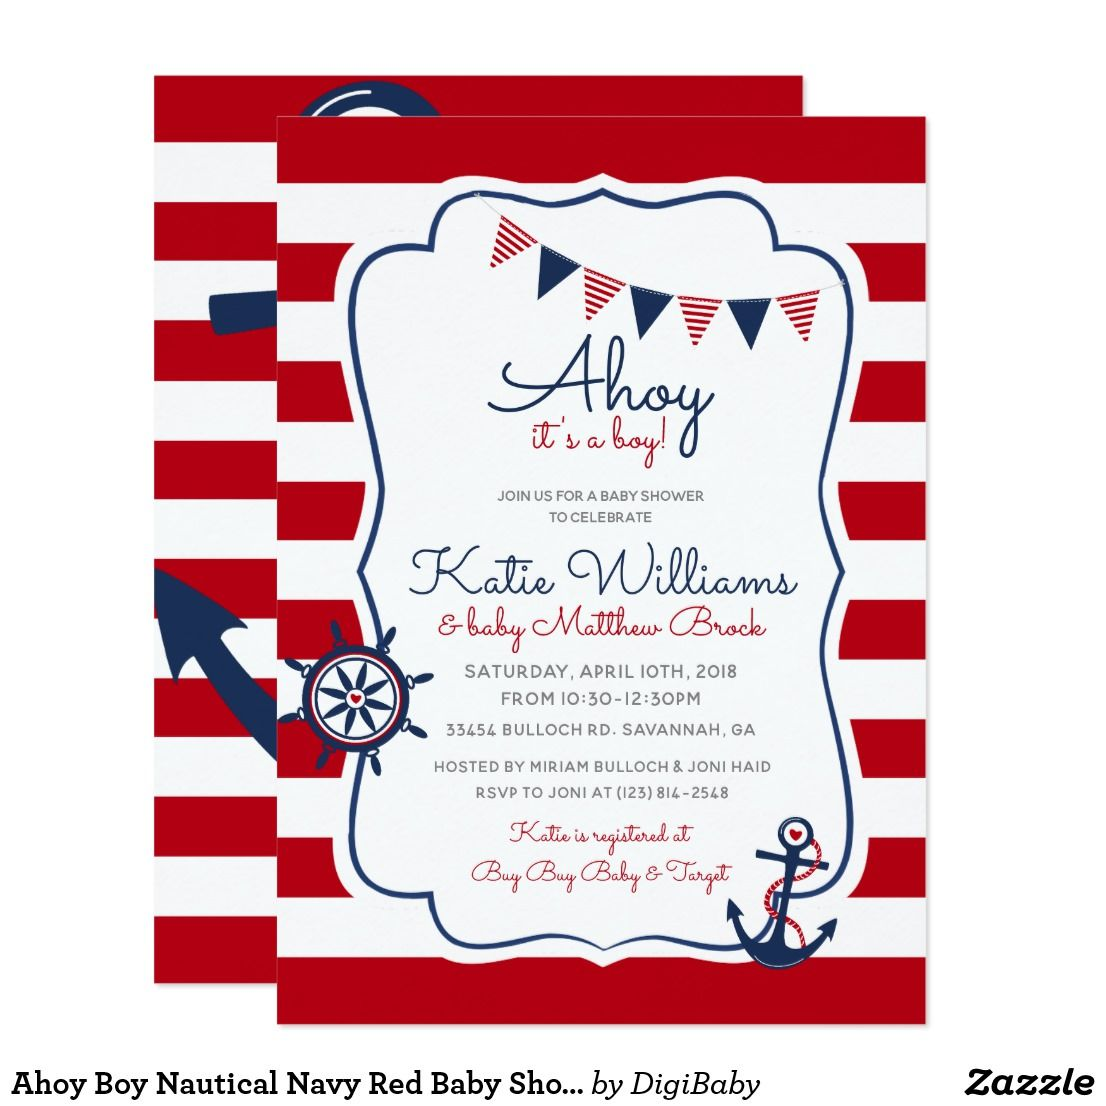 Ahoy boy nautical navy red baby shower invitation customize your ahoy boy nautical navy red baby shower invitation customize your own on zazzle filmwisefo Image collections